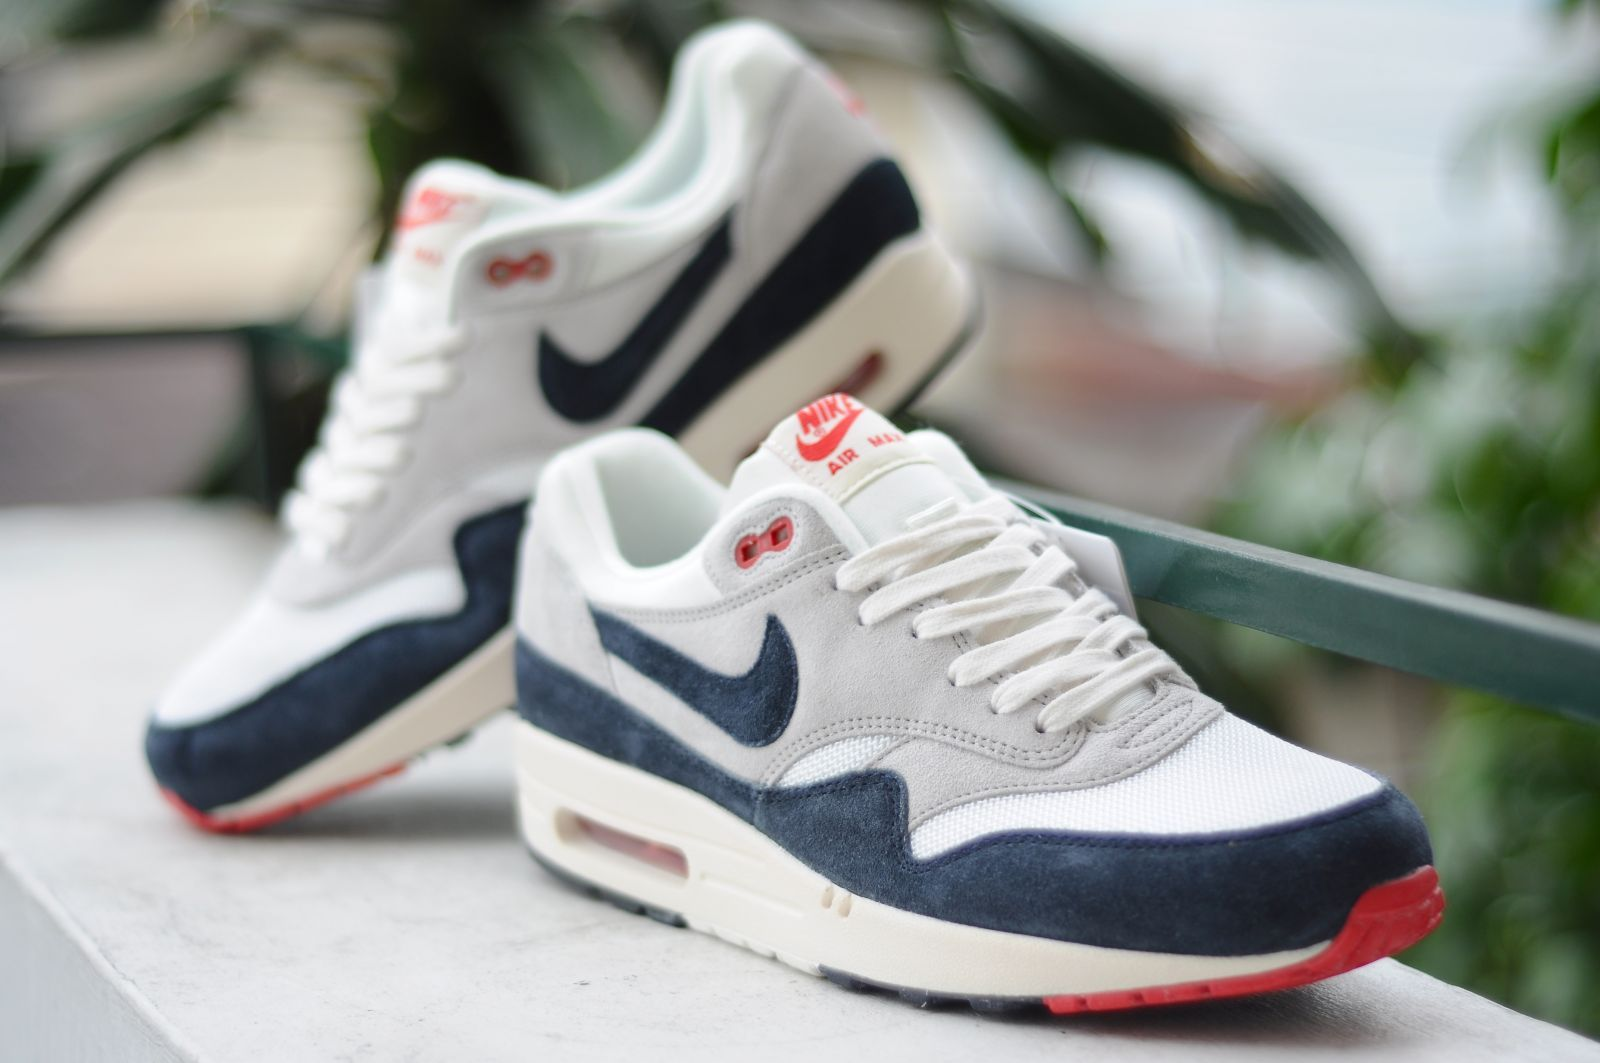 timeless design 62283 56933 Nike Air Max 1 OG VNTG - White Navy-Red    airmax1  nike  trainers  sneakers